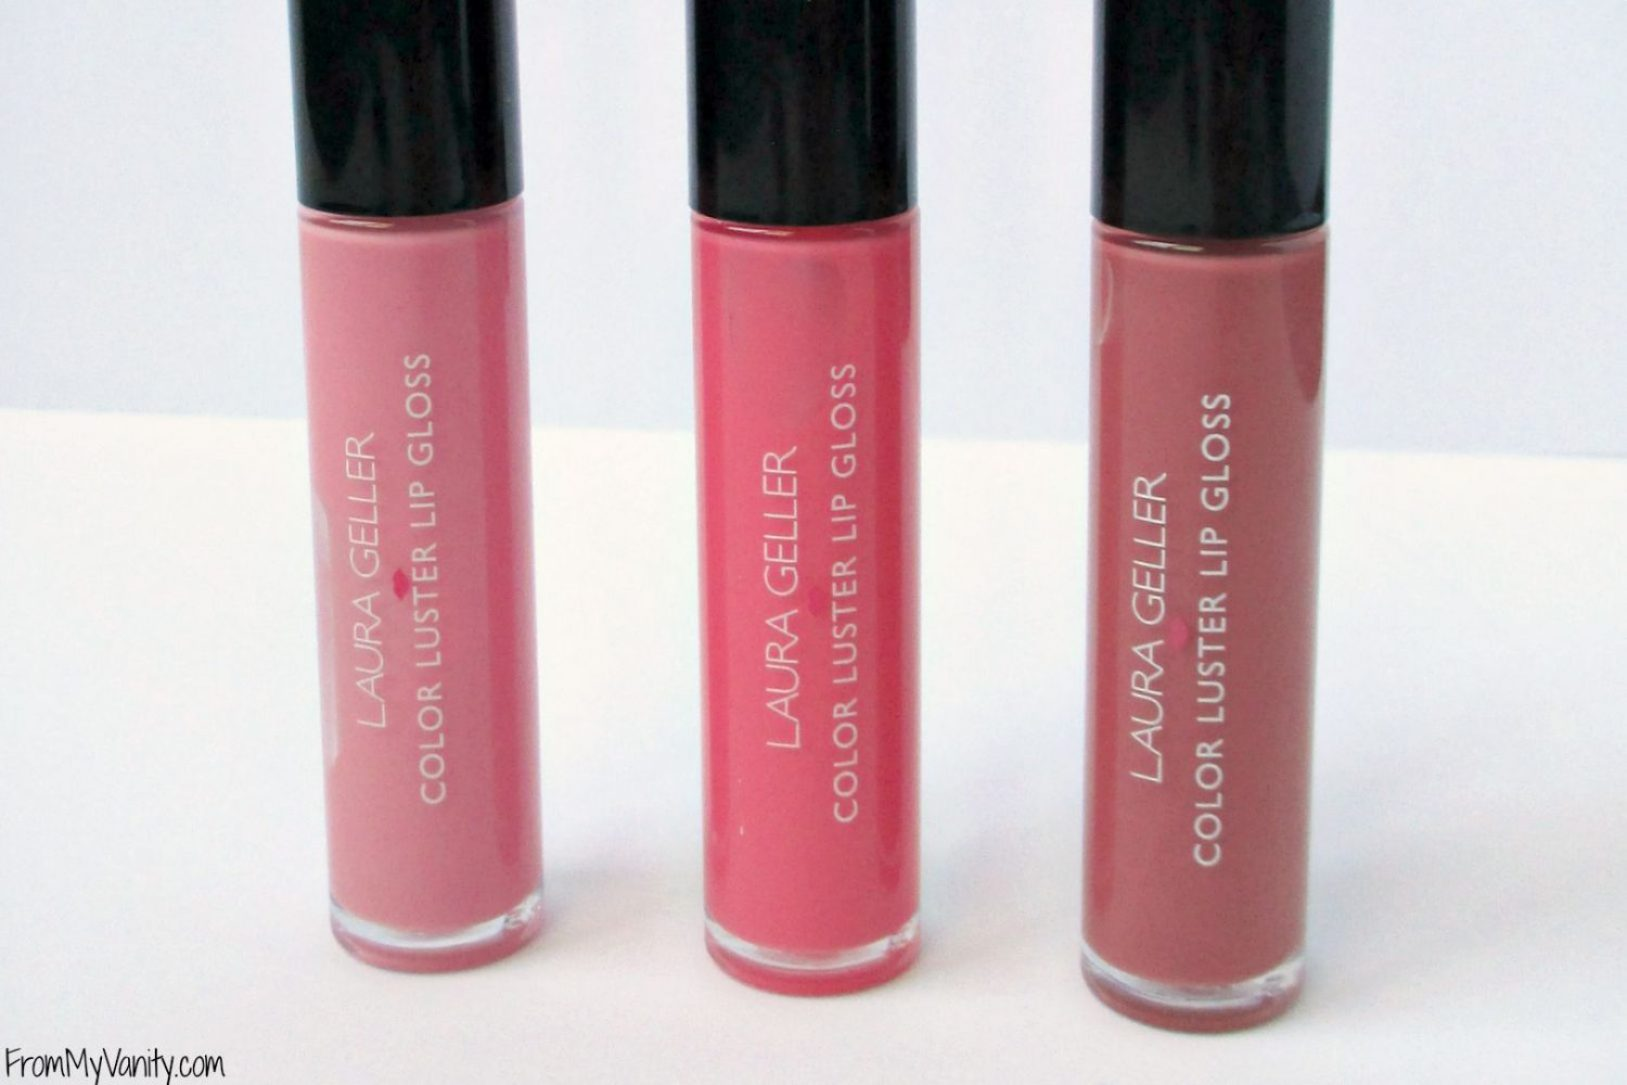 Laura Geller Color Luster Lip Glosses // Trio // From My Vanity